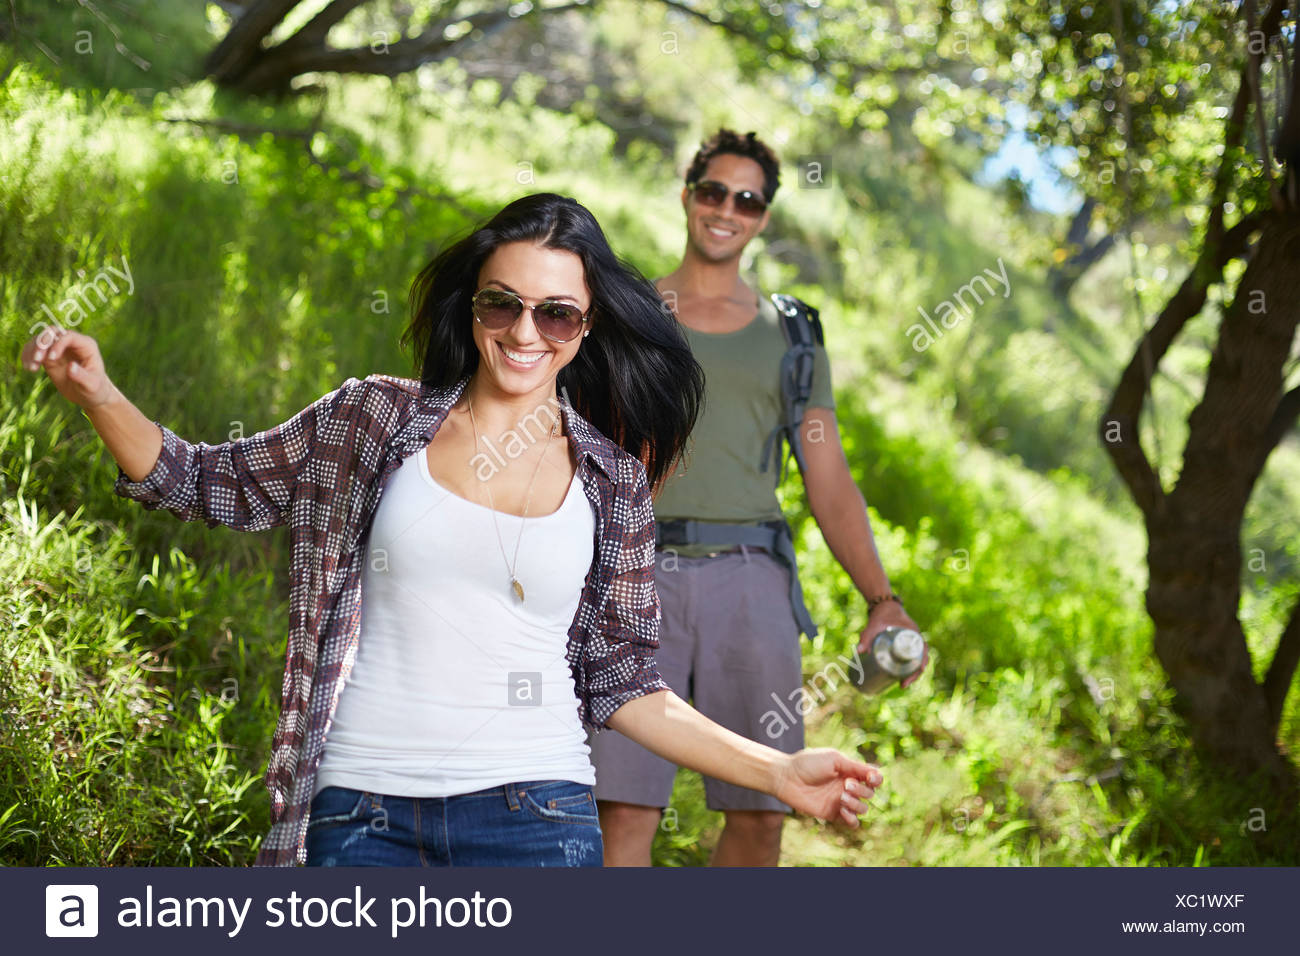 Smiling couple walking in woodlands Photo Stock